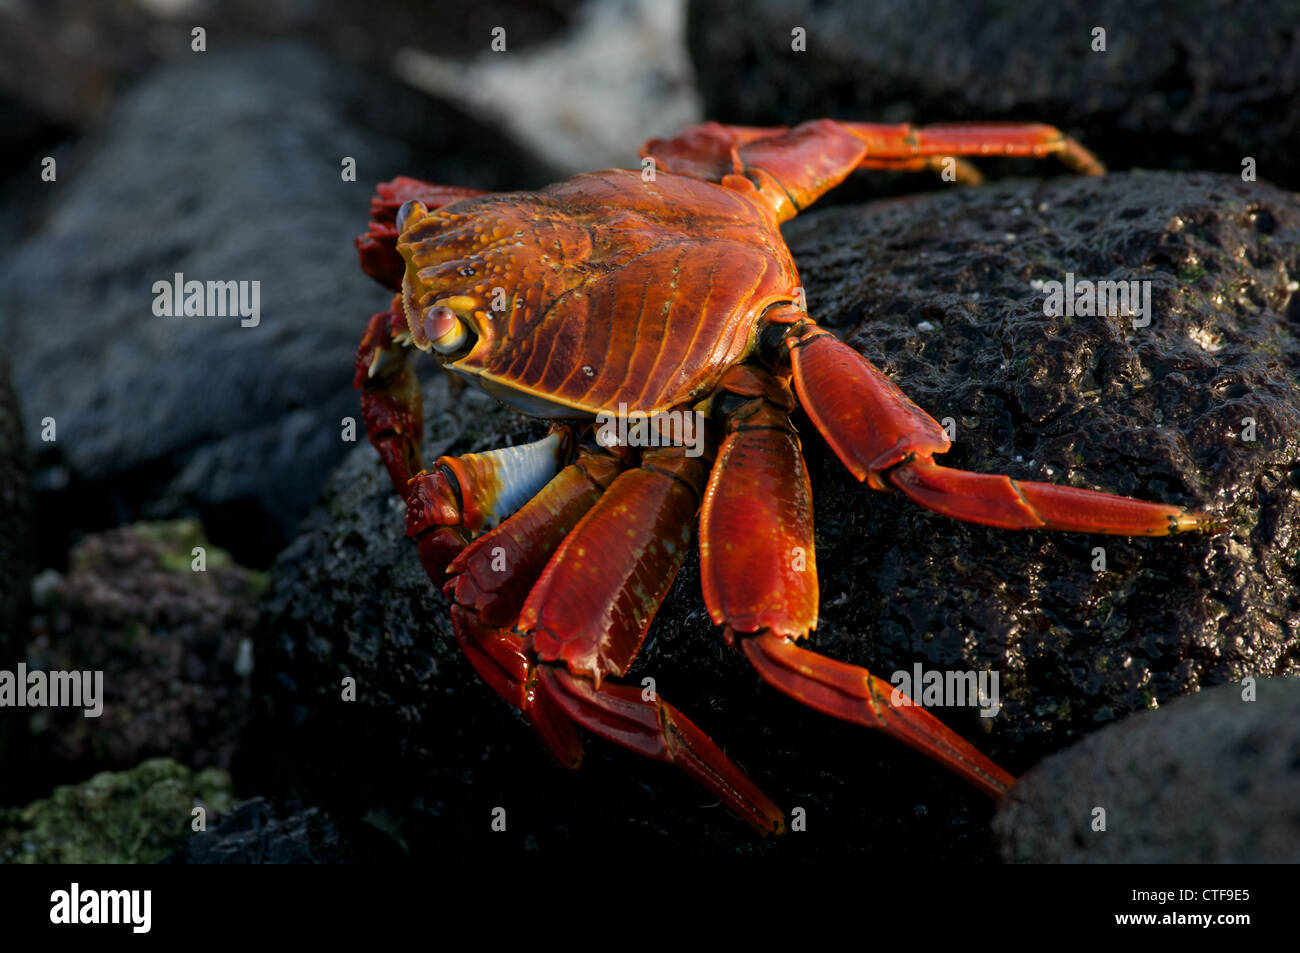 A Sally Lightfoot Crab (Grapsus grapsus) on the volcanic shoreline of Santa Fe Island in the Galapagos Islands, - Stock Image